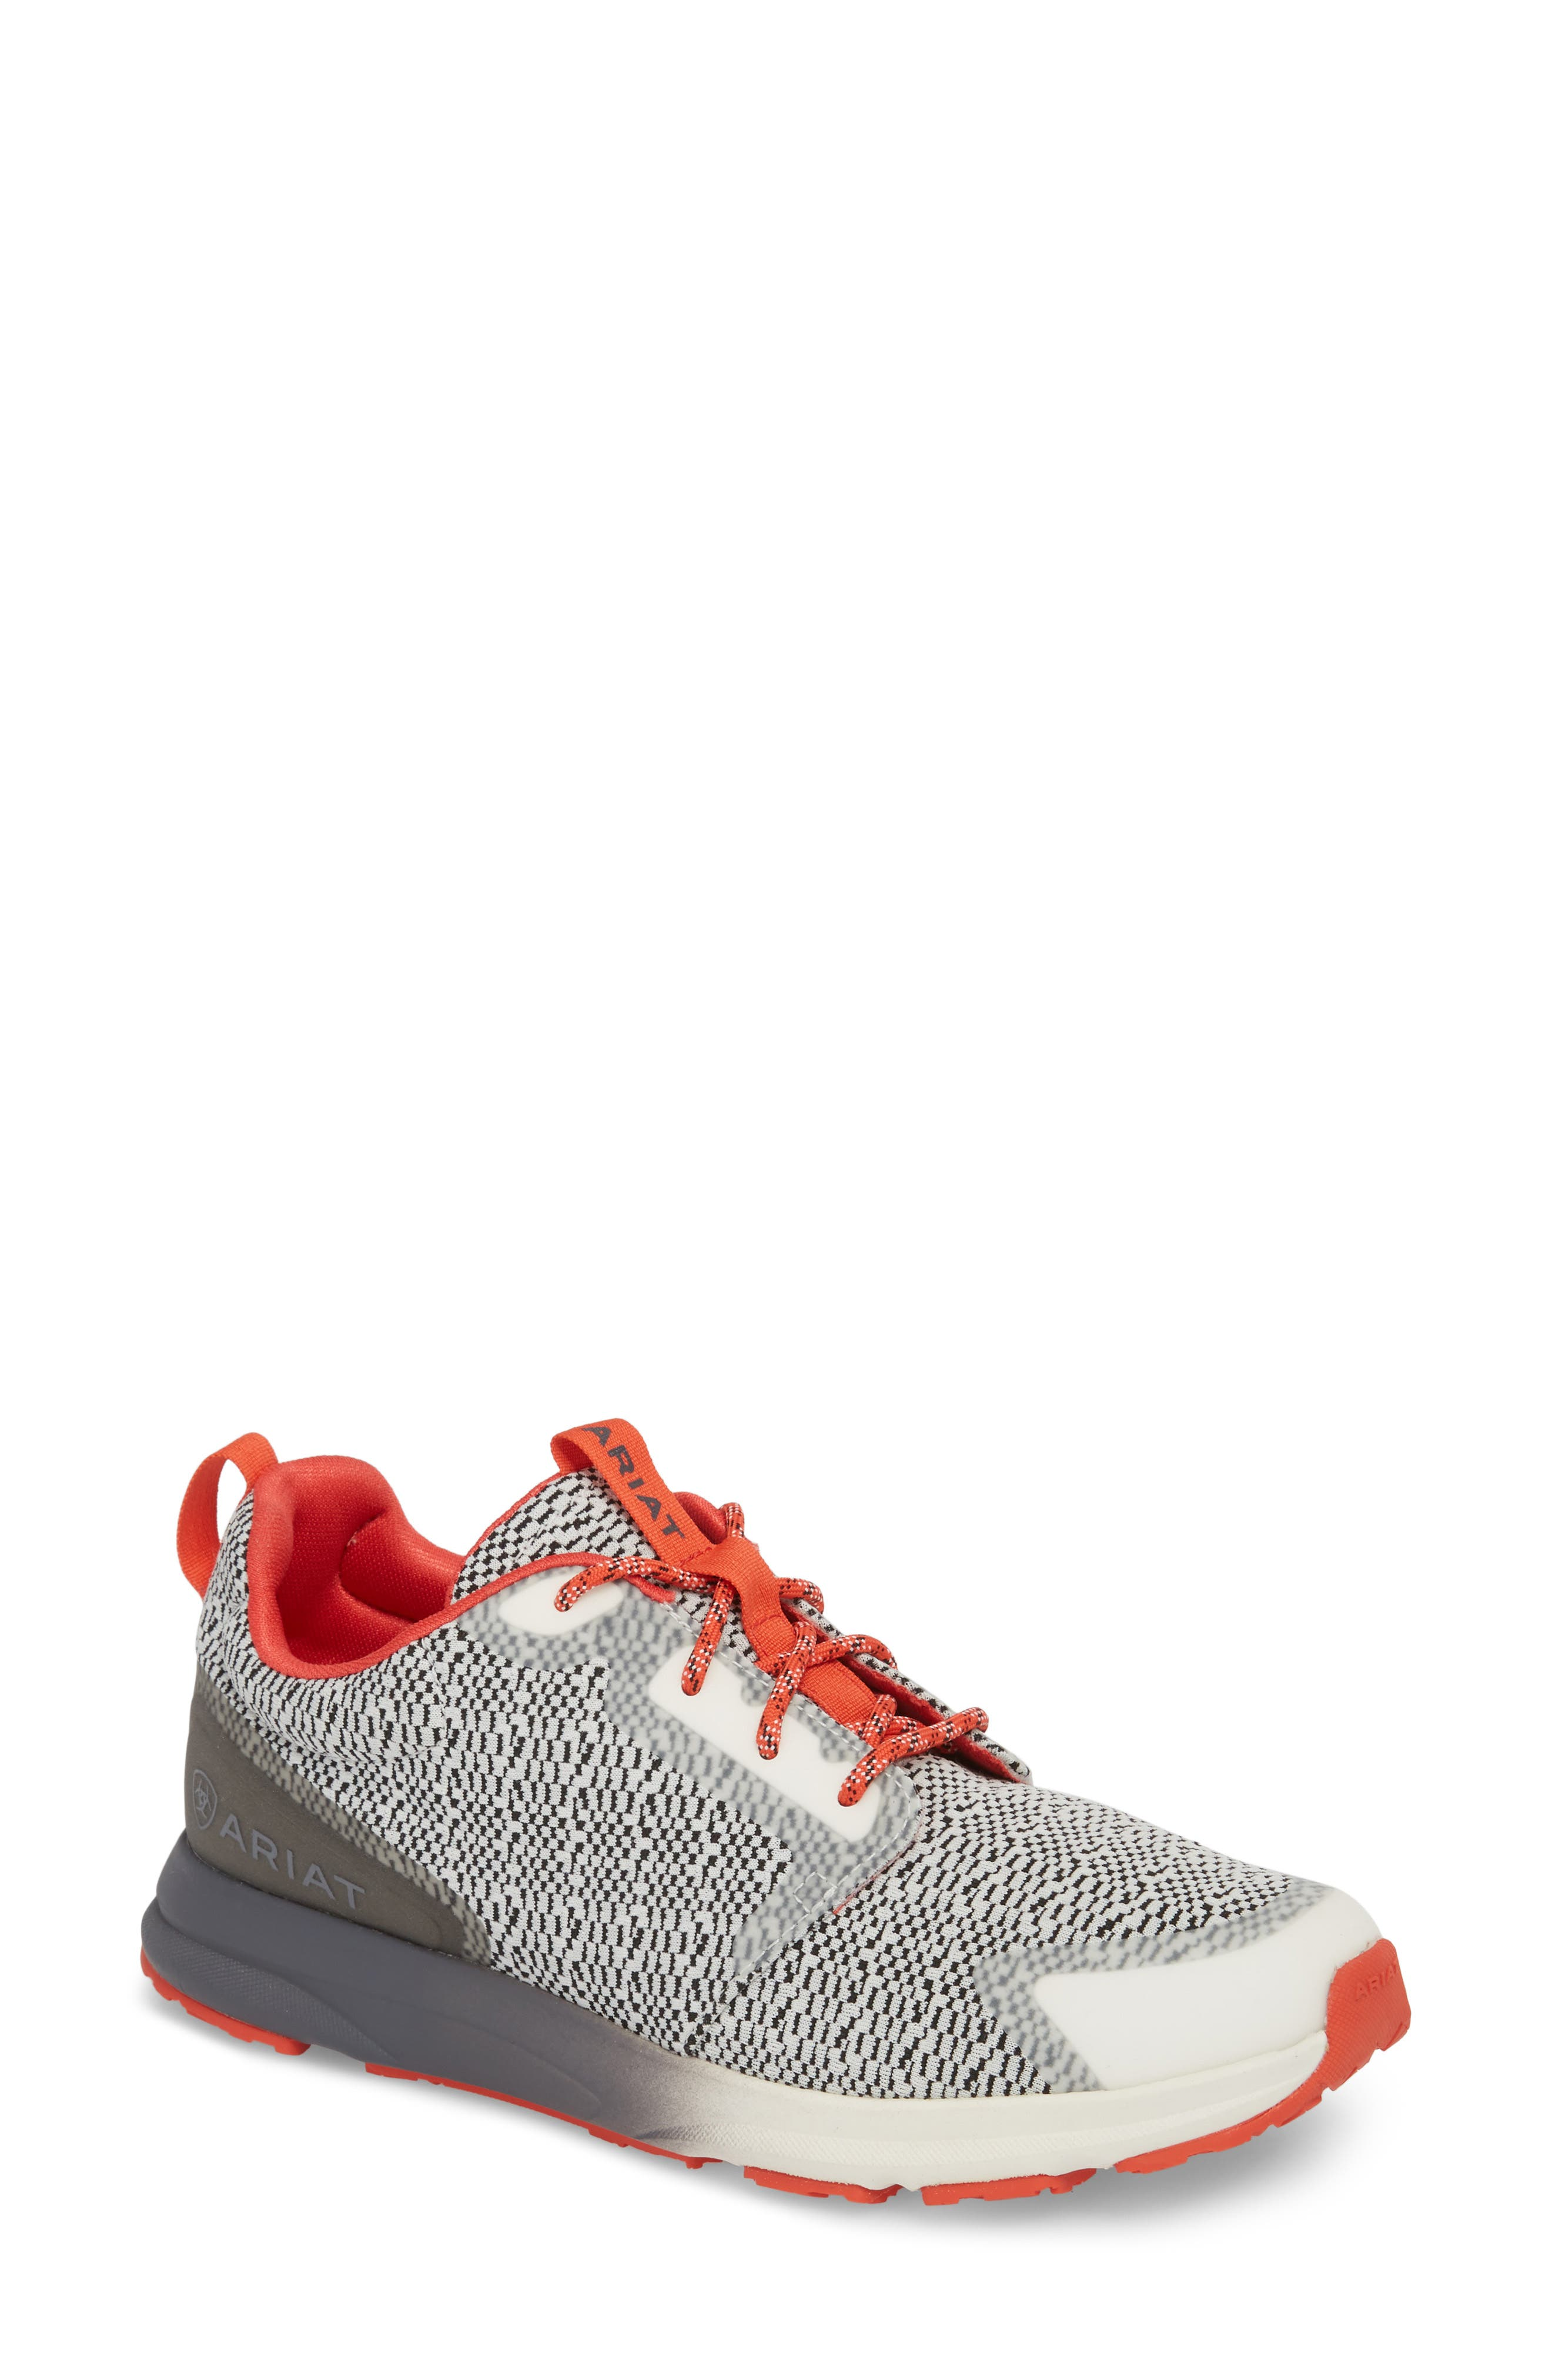 Fuse Print Sneaker,                         Main,                         color, SALT AND PEPPER